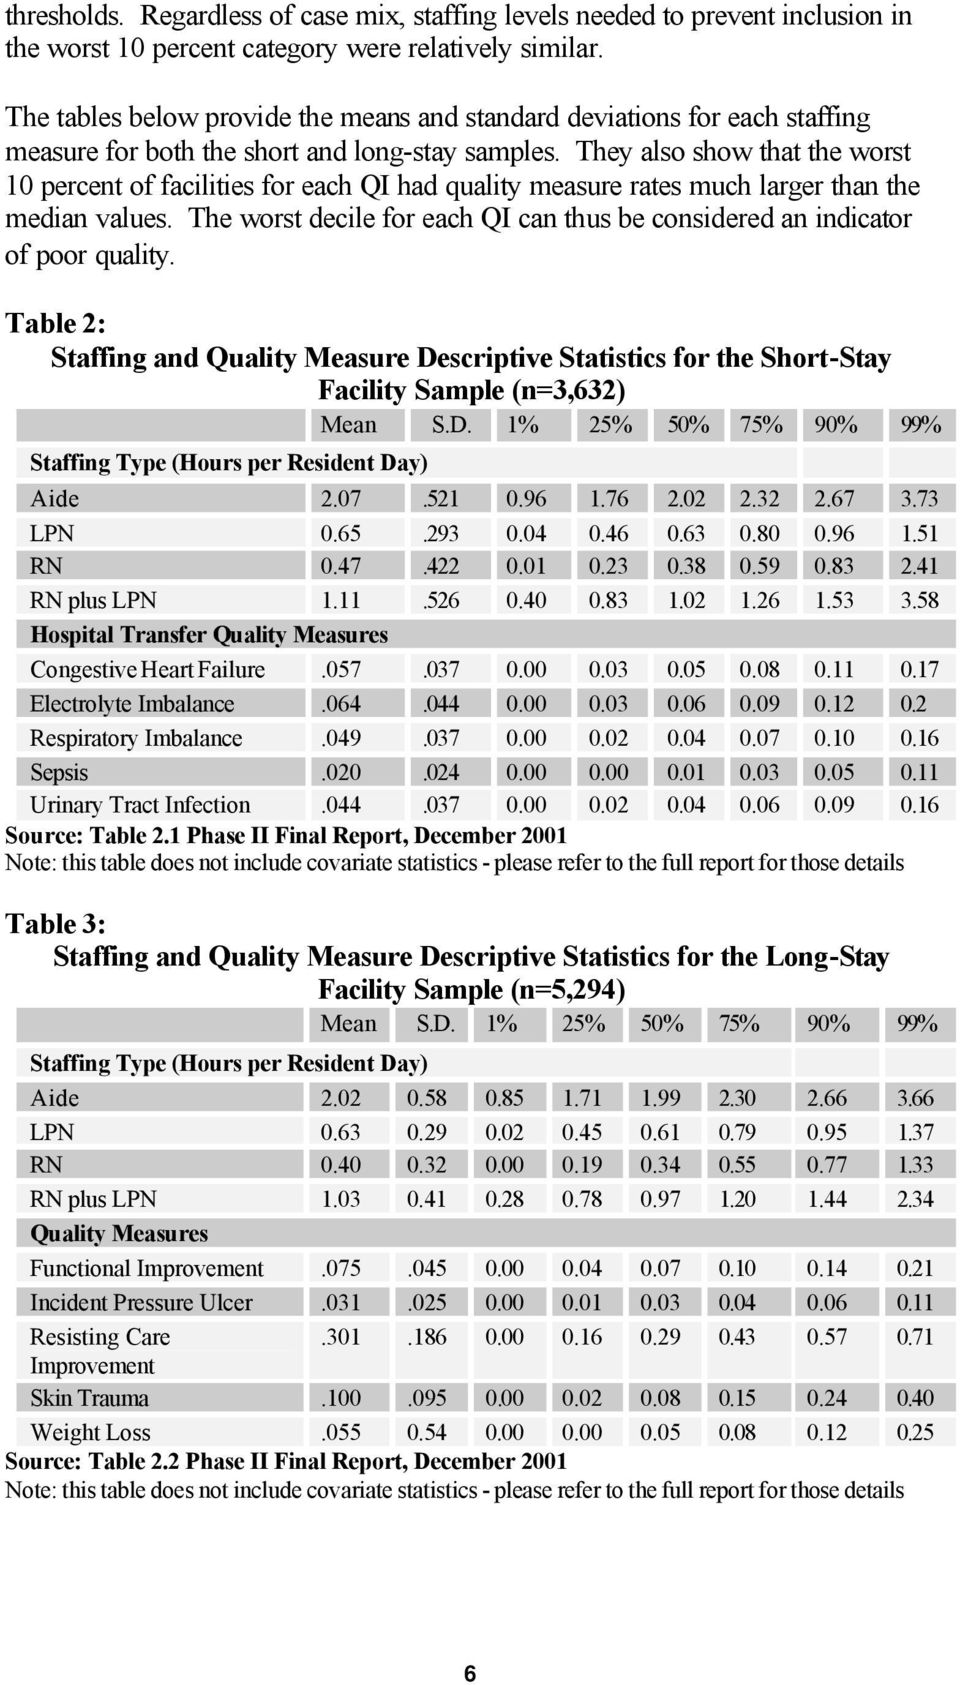 They also show that the worst 10 percent of facilities for each QI had quality measure rates much larger than the median values.